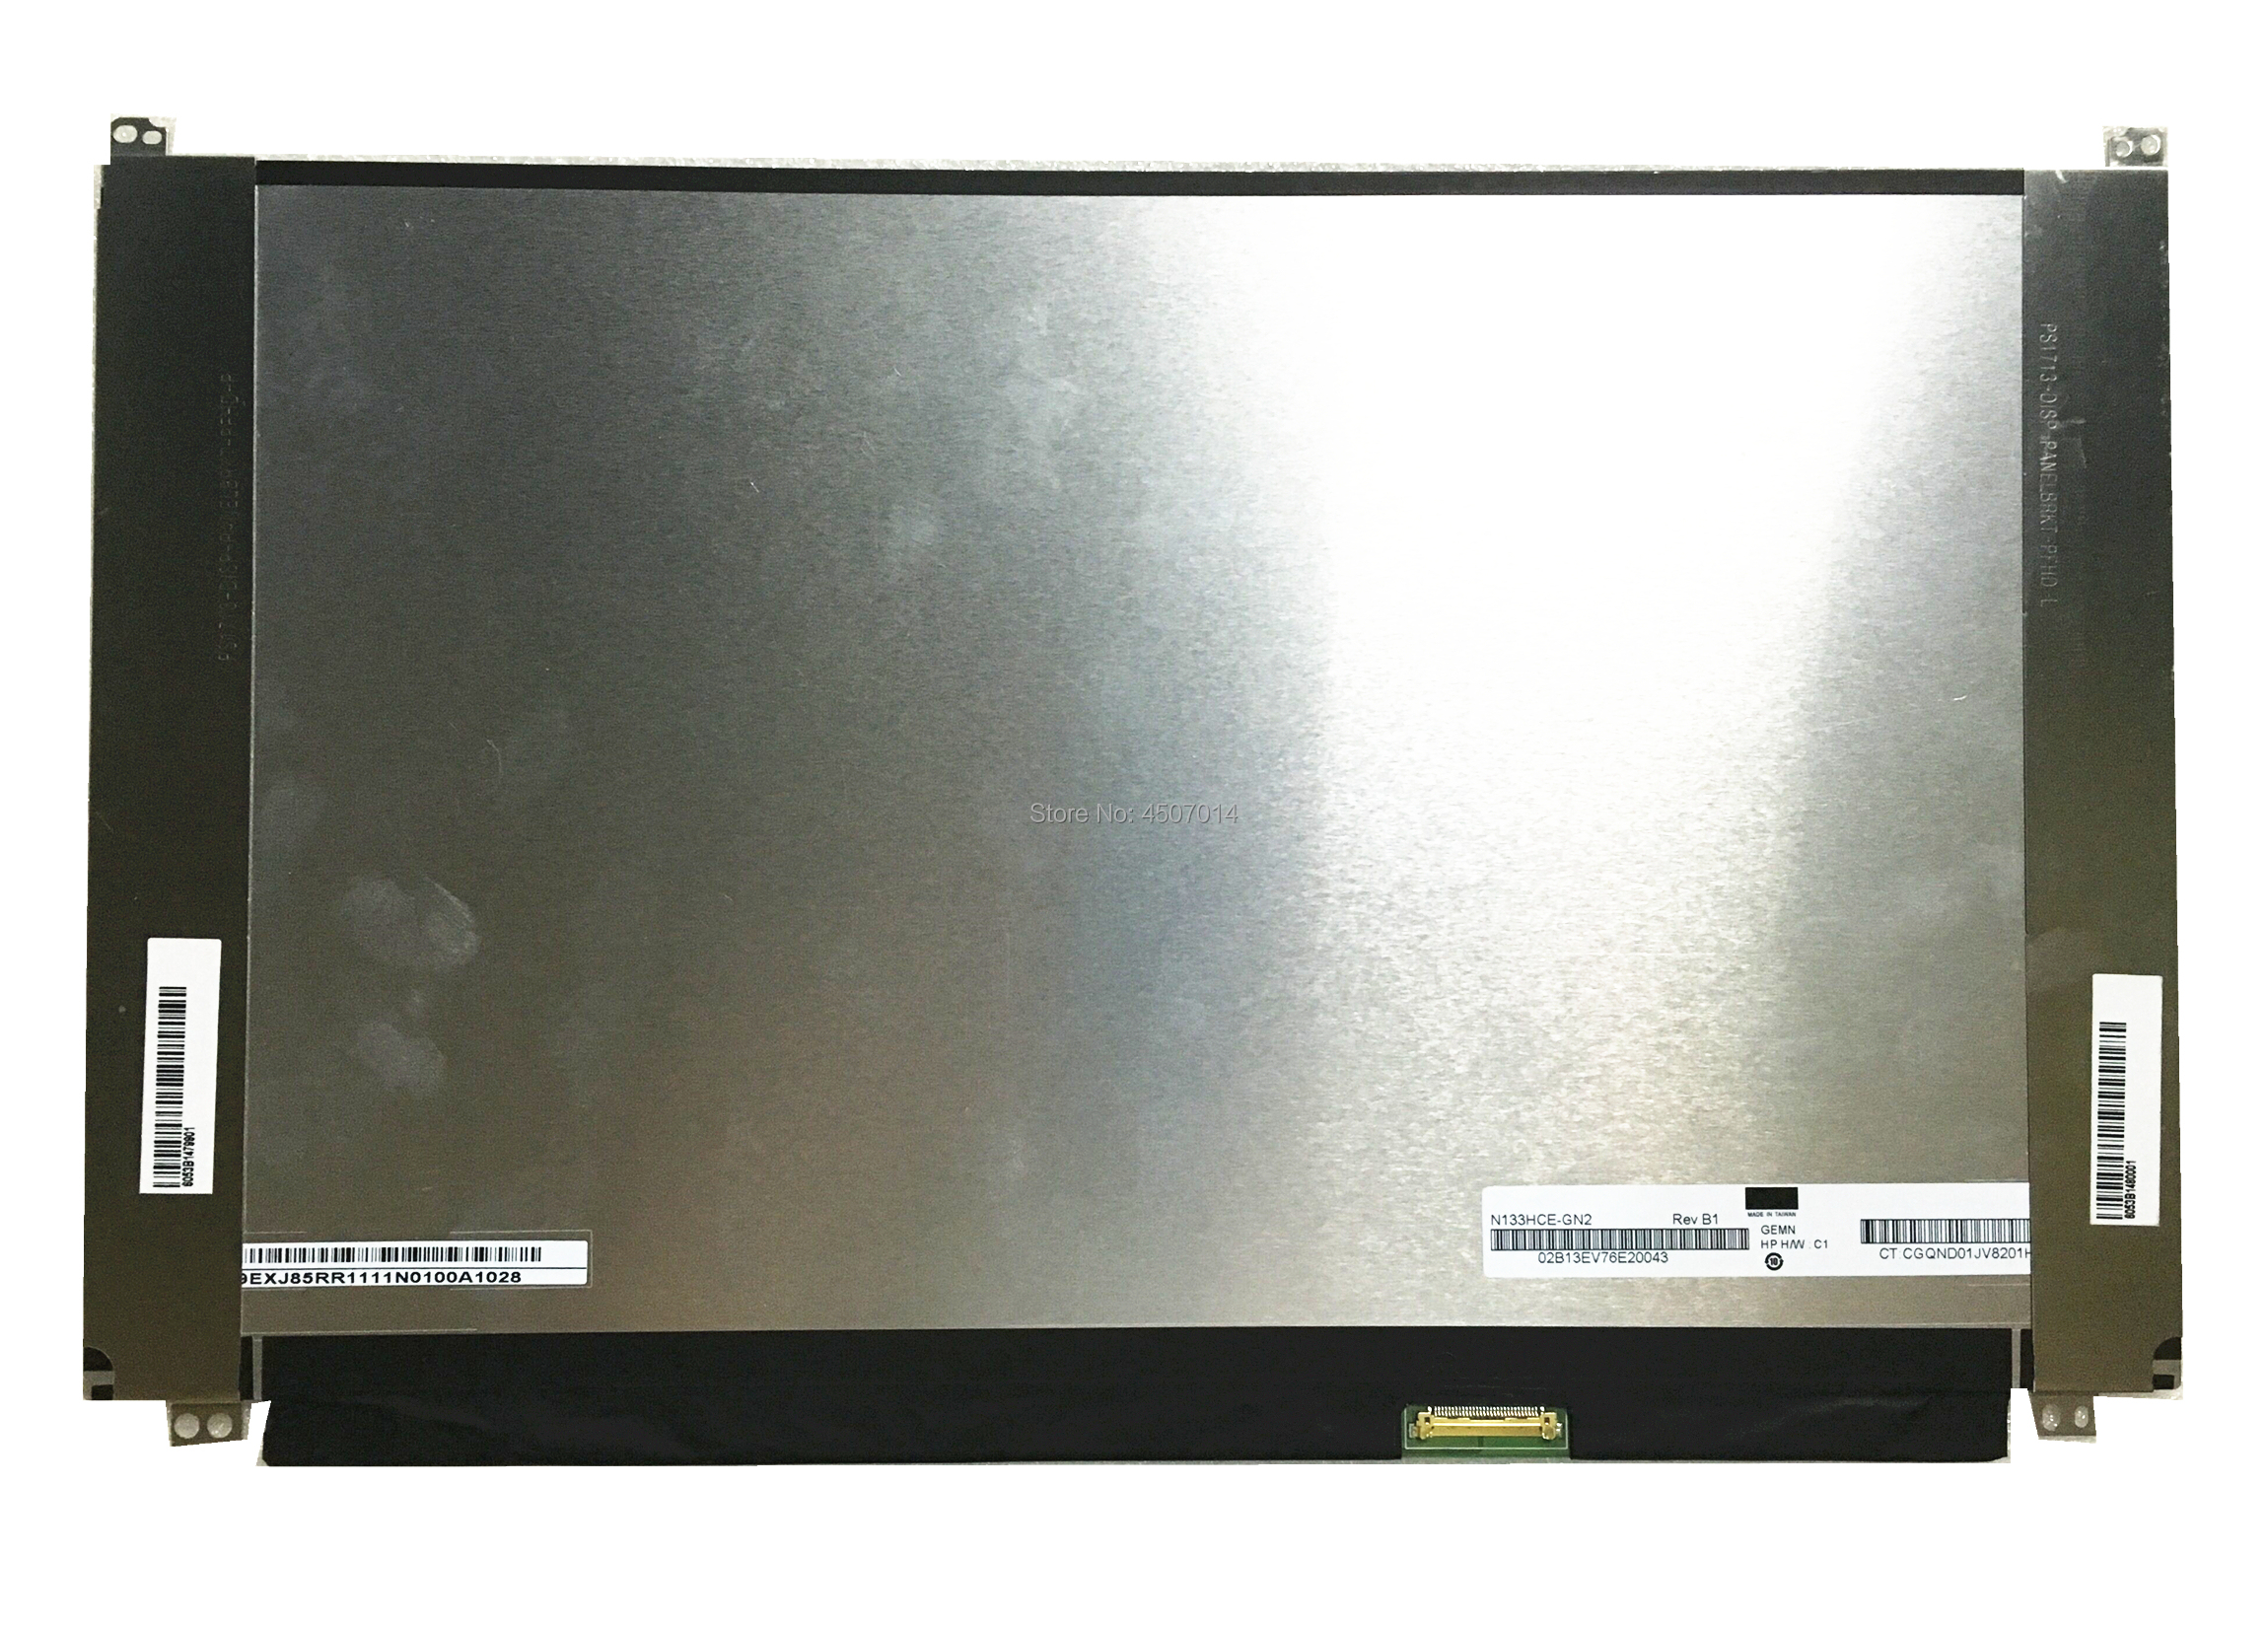 Free Shipping N133HCE-GN2 N133HCE GN2 13.3inch Original Laptop Lcd Screen Free Shipping N133HCE-GN2 N133HCE GN2 13.3inch Original Laptop Lcd Screen